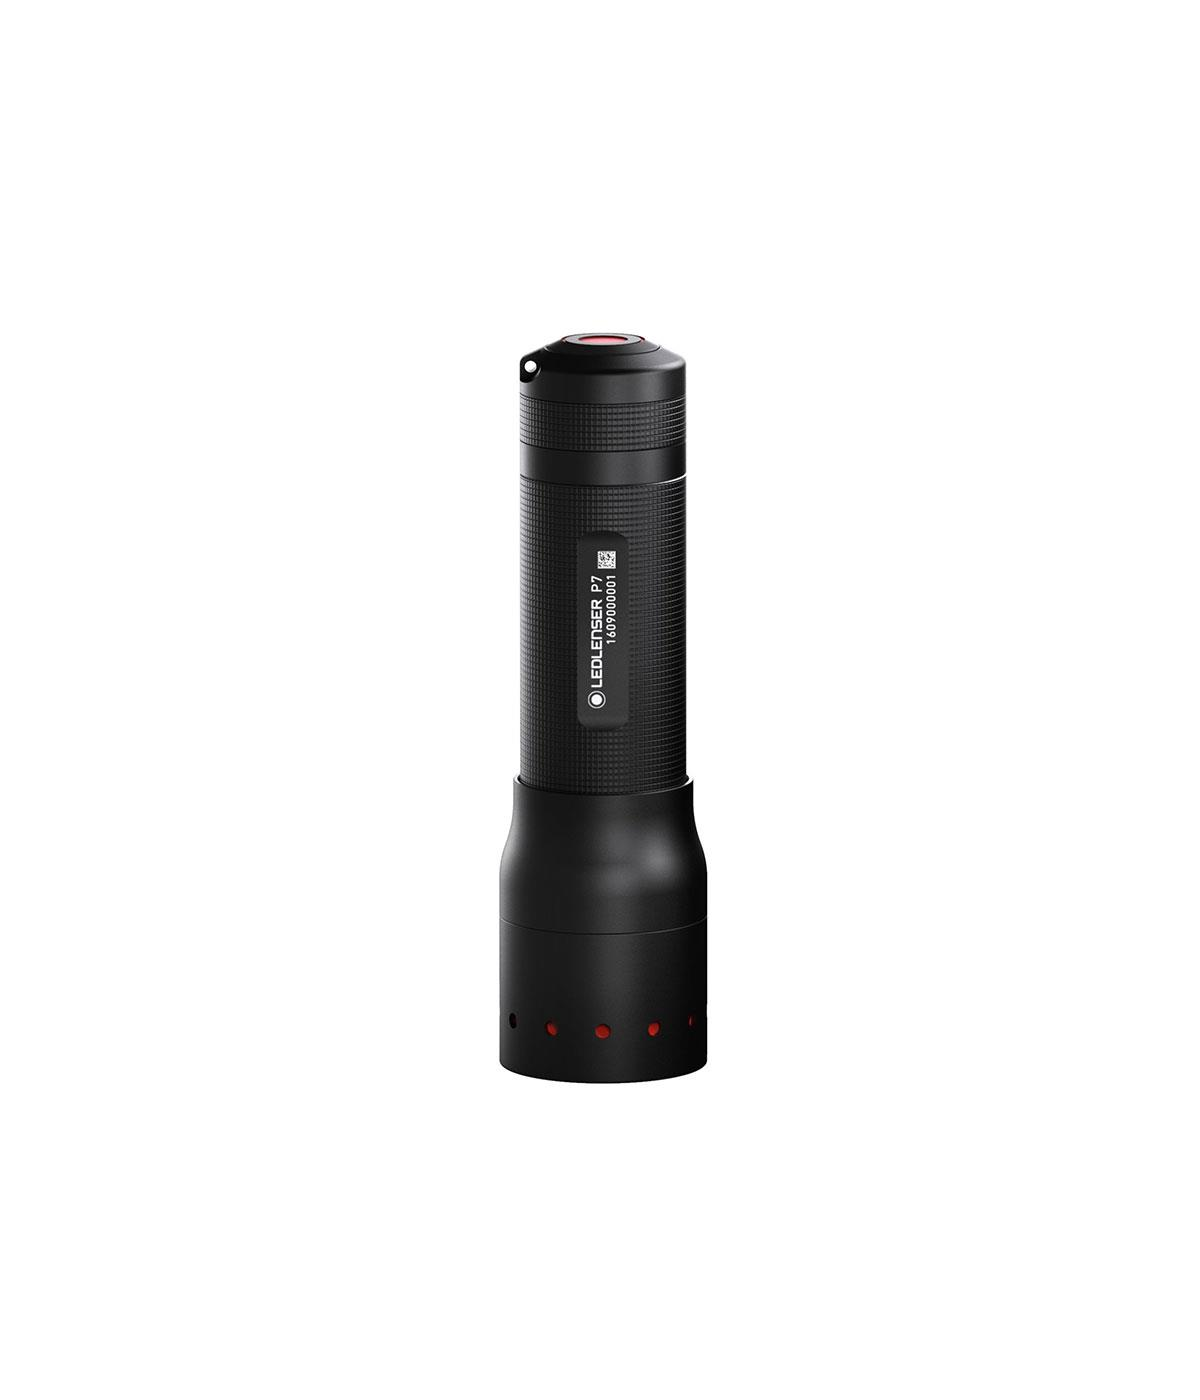 Led Lenser P7 El Feneri Bx Led501046